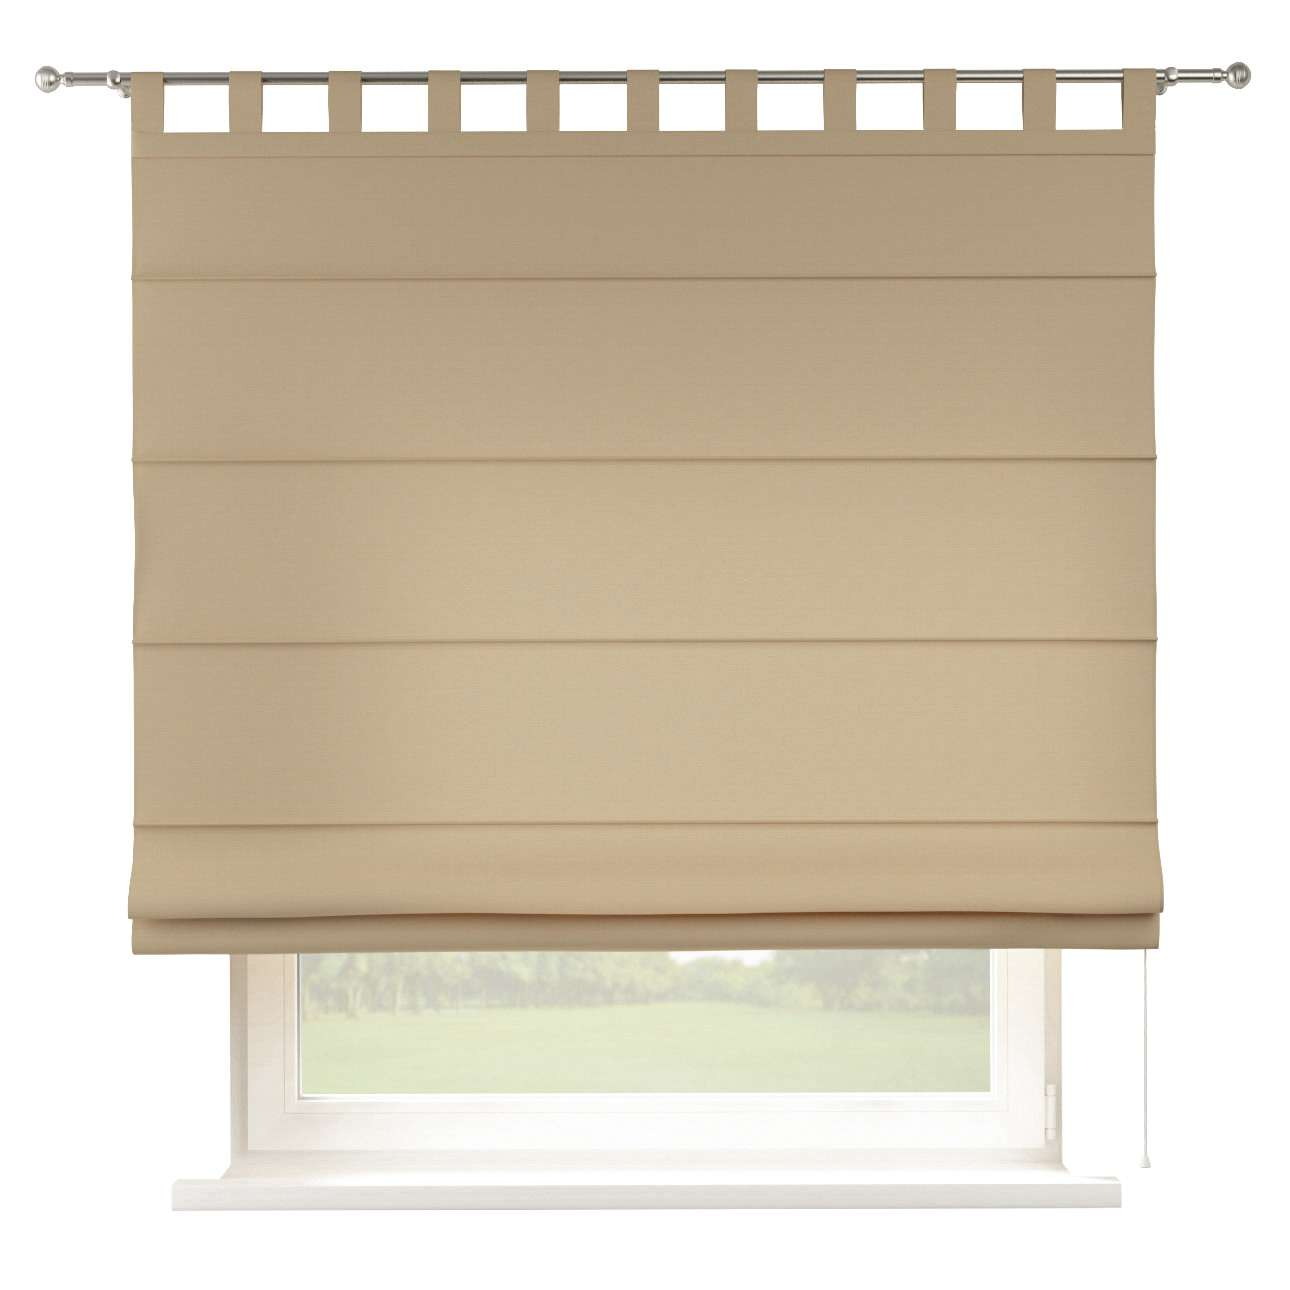 Verona tab top roman blind 80 x 170 cm (31.5 x 67 inch) in collection Cotton Panama, fabric: 702-01